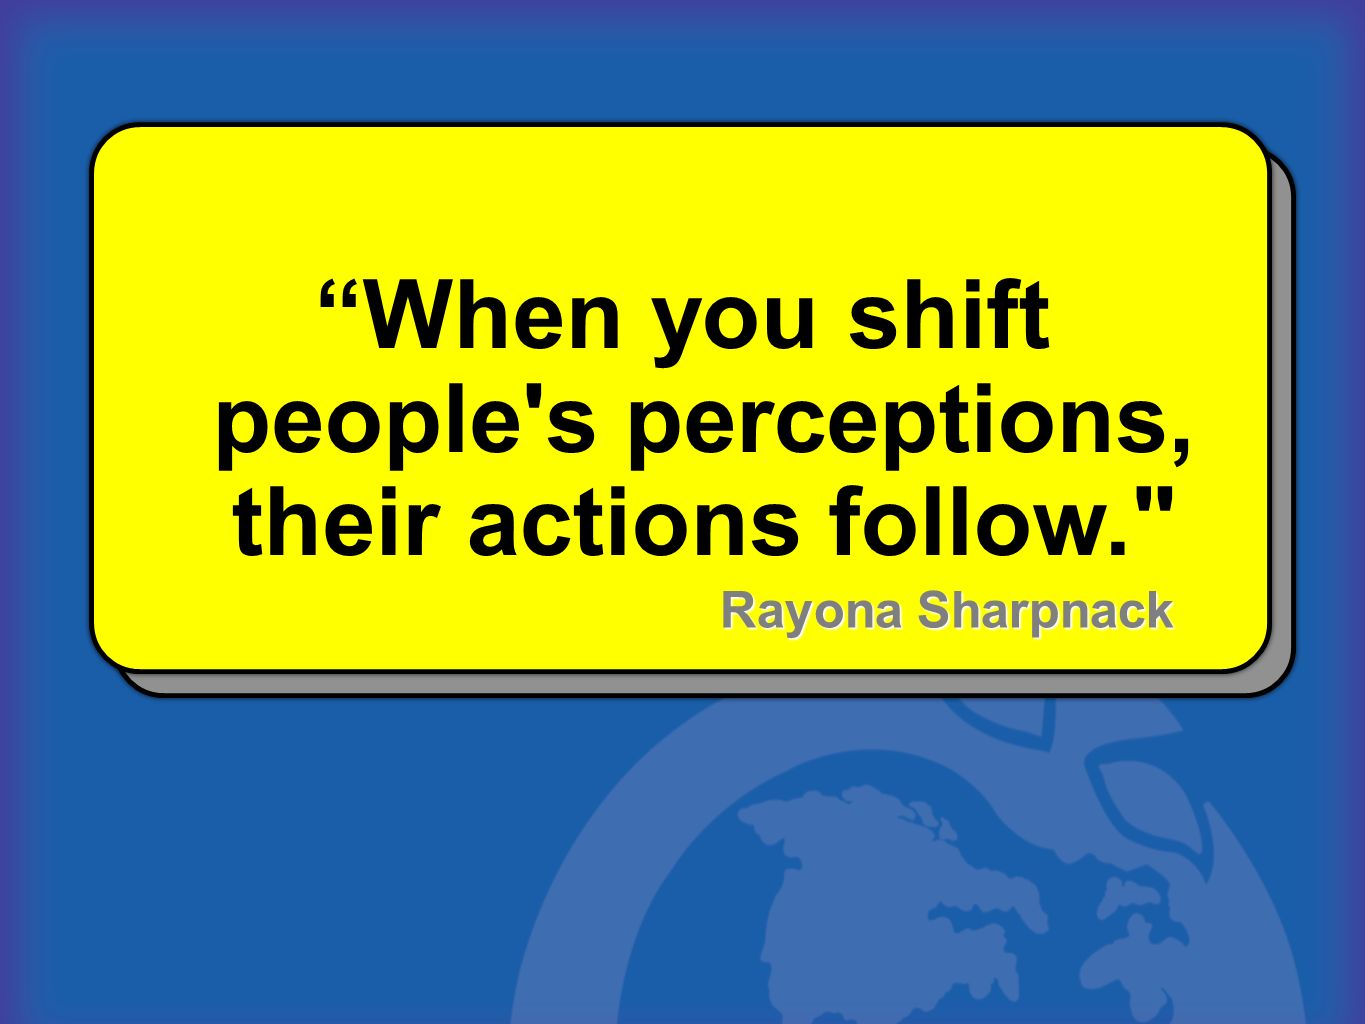 When you shift people s perceptions, their actions follow.